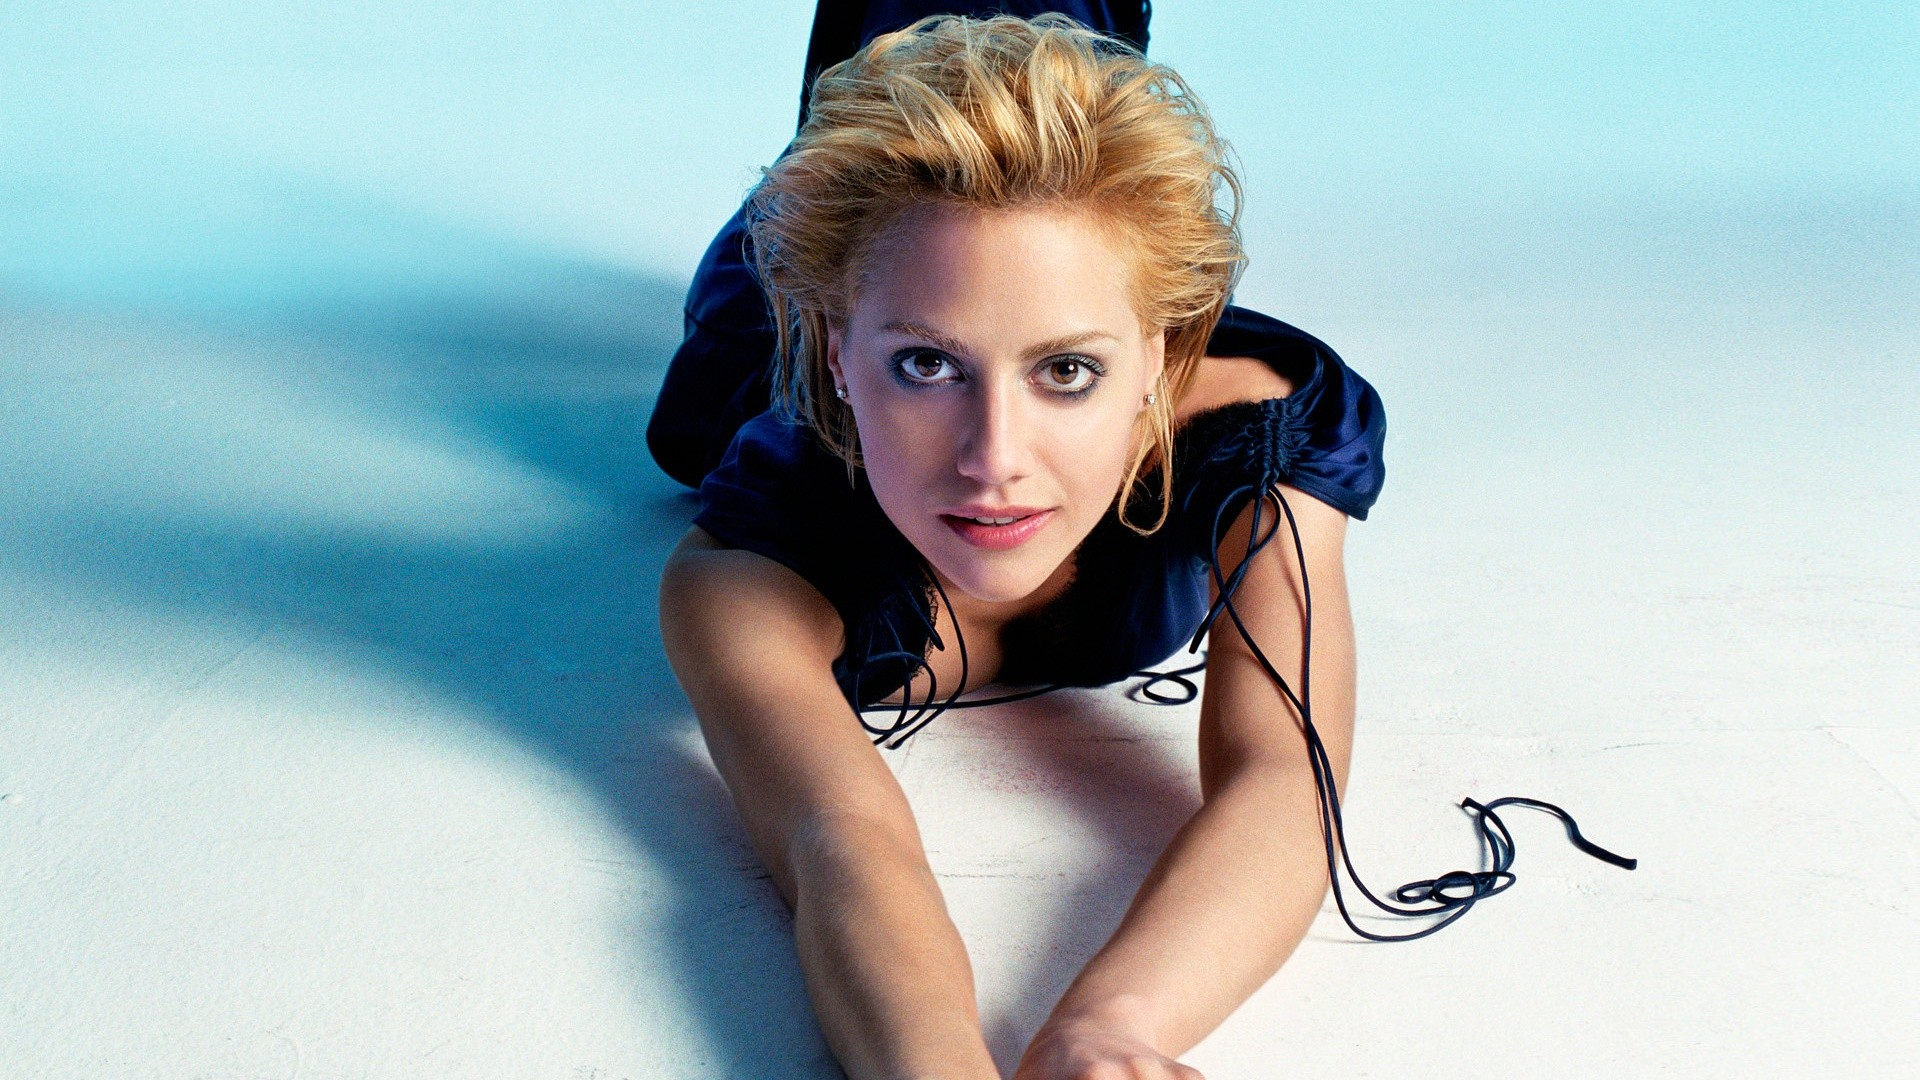 1920x1080 - Brittany Murphy Wallpapers 1